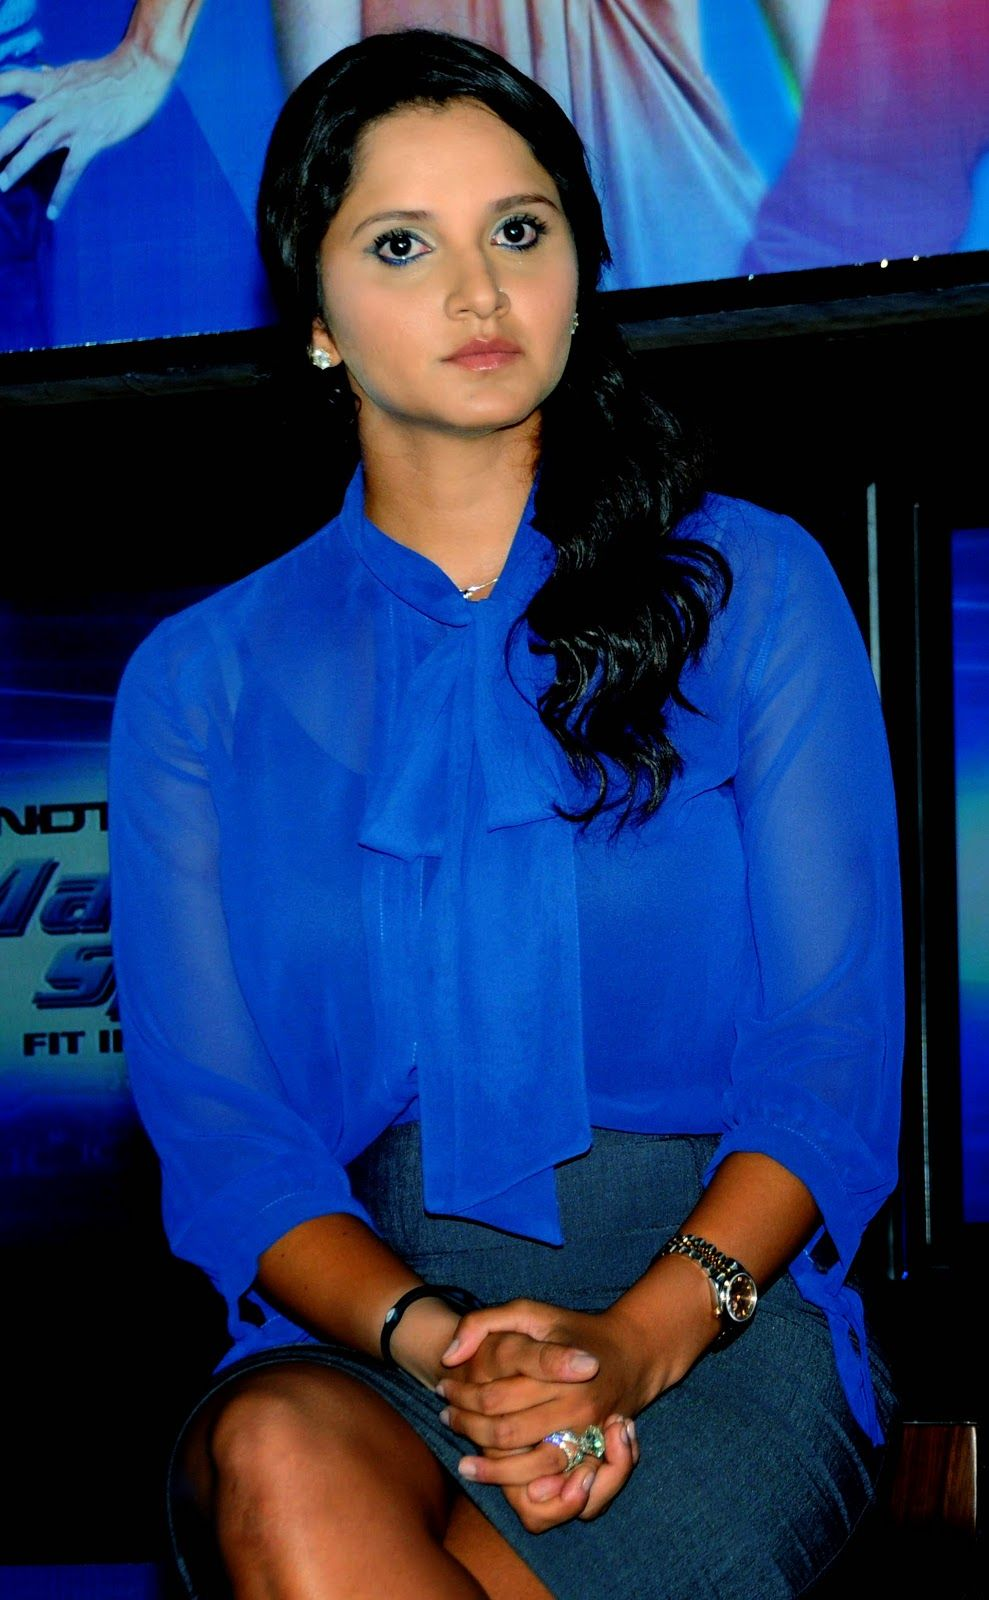 Sania Mirza HD Pictures, Photos | Tennis stars, Hd picture, Sports stars